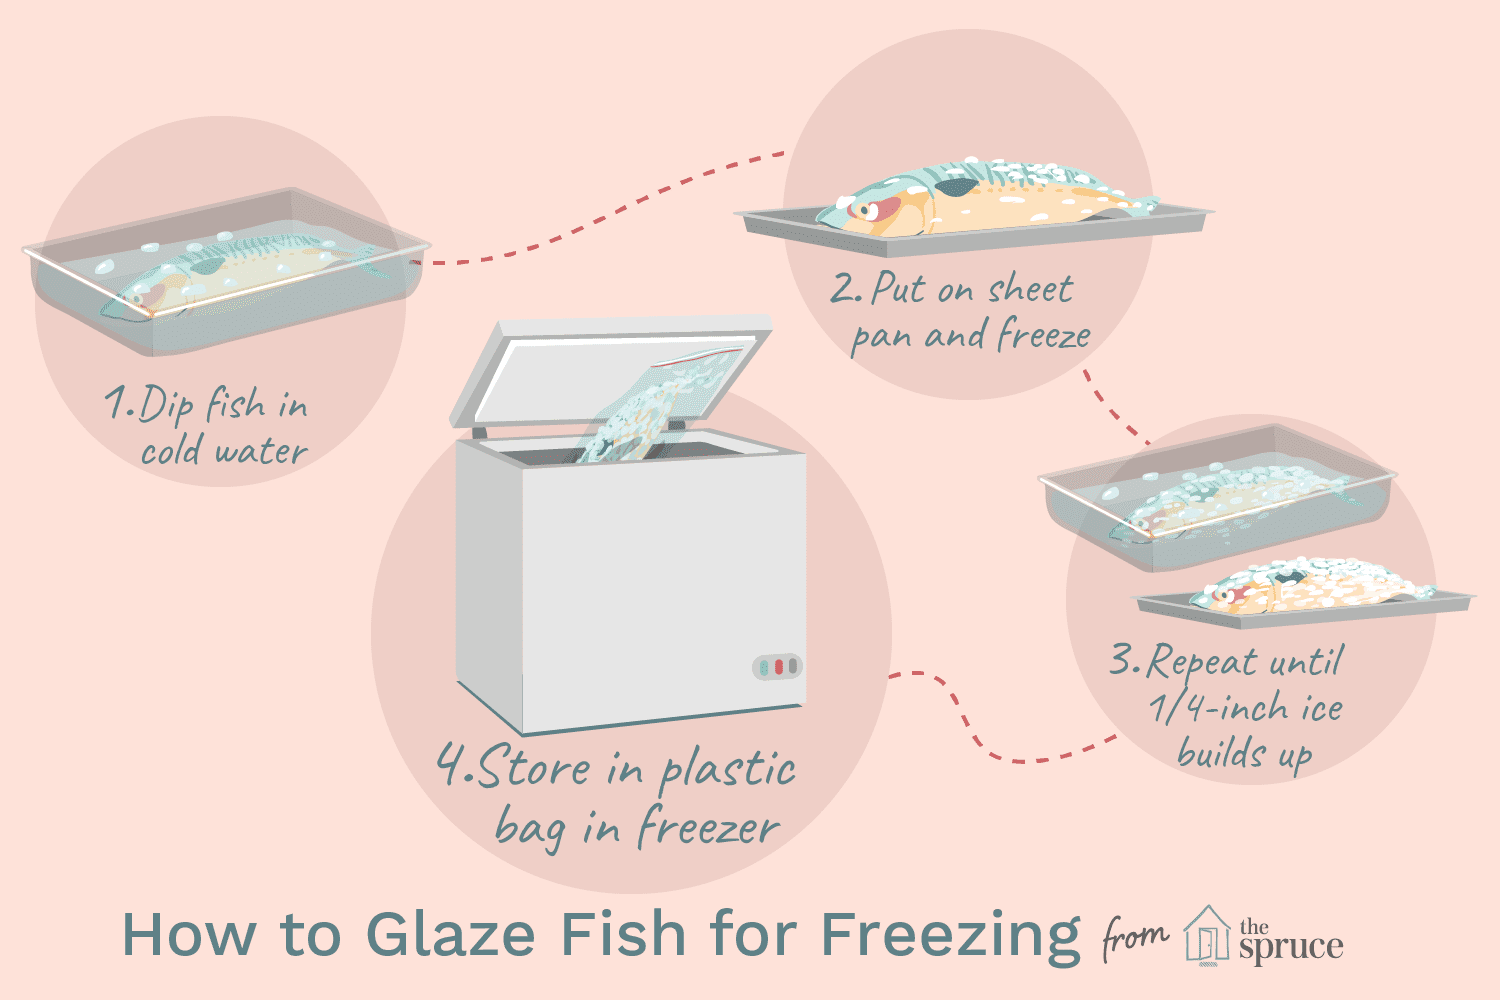 How to glaze fish for freezing